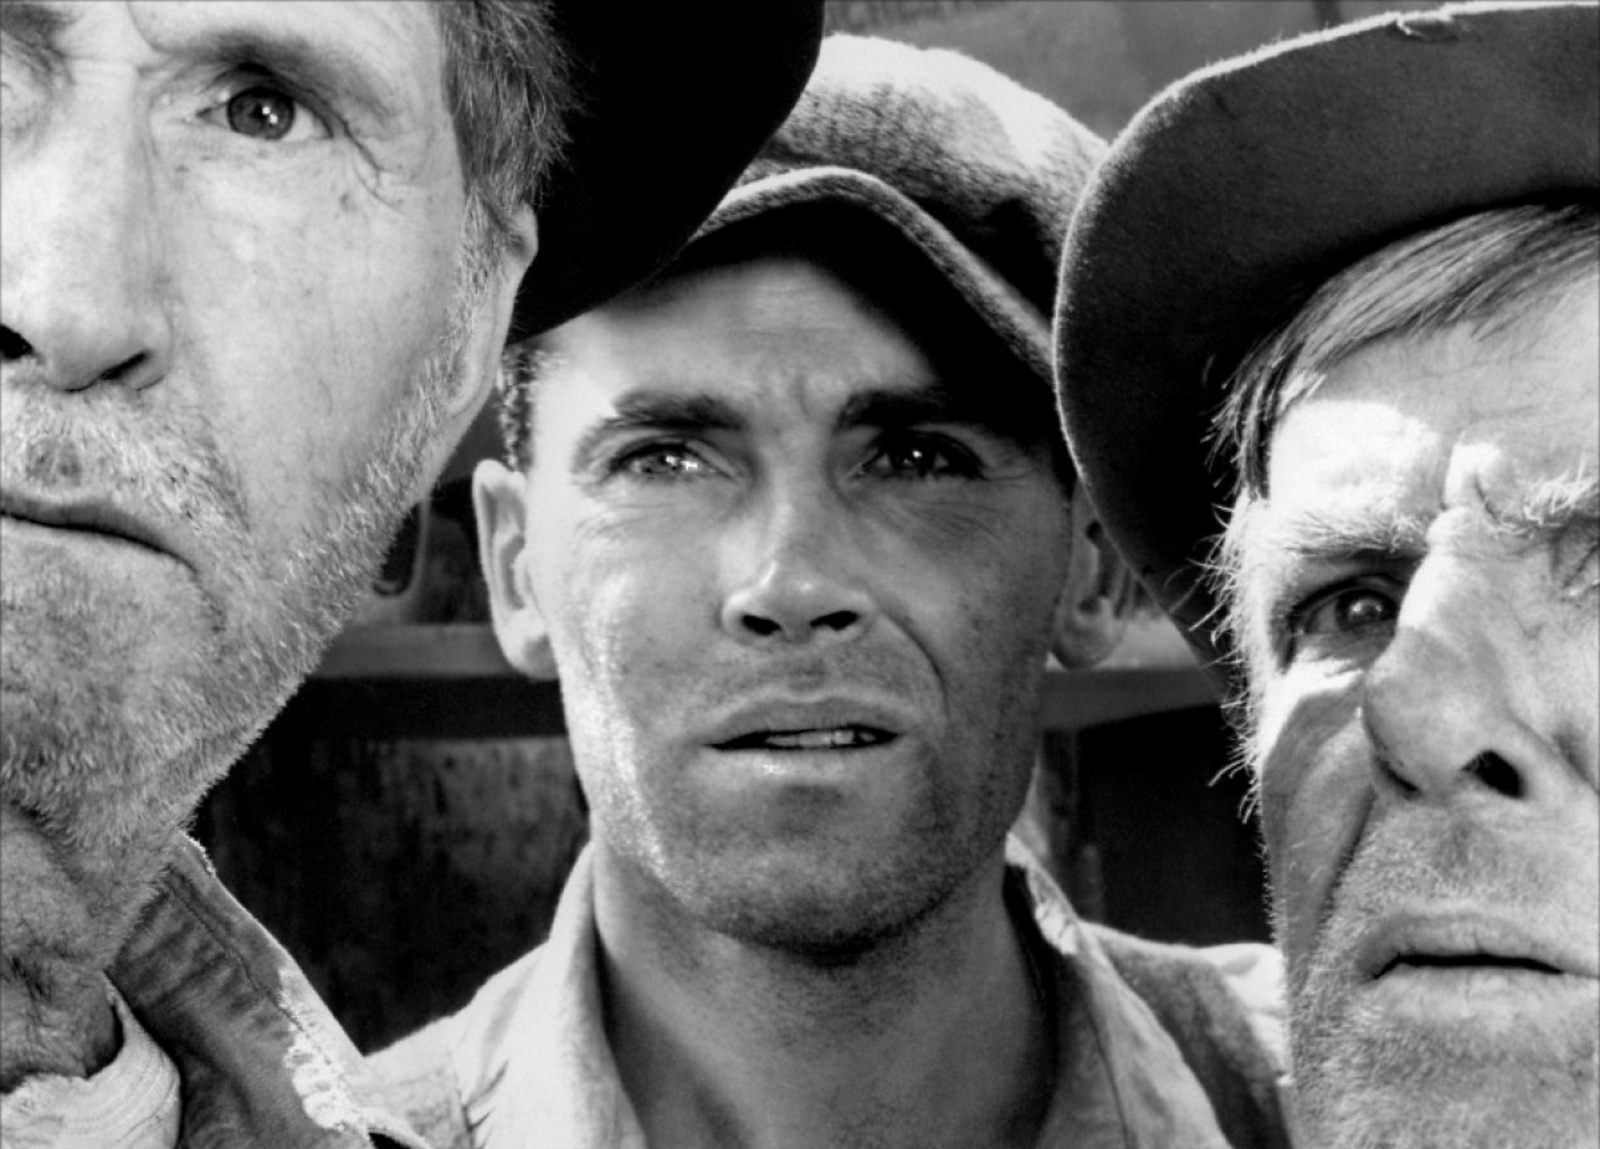 I need help with the following essay questions from the grapes of wrath film:?